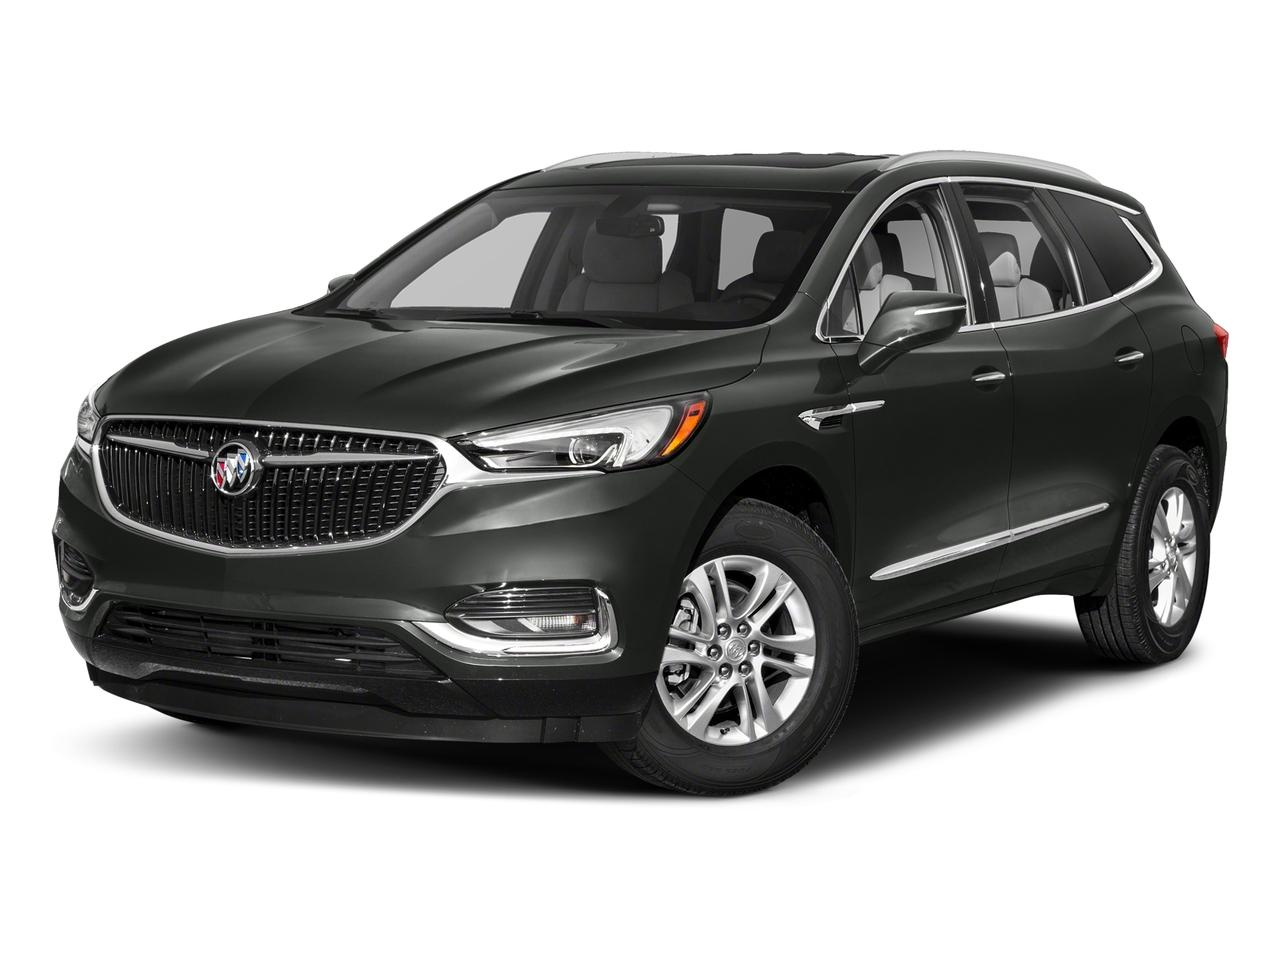 2018 Buick Enclave Vehicle Photo in Peoria, IL 61615